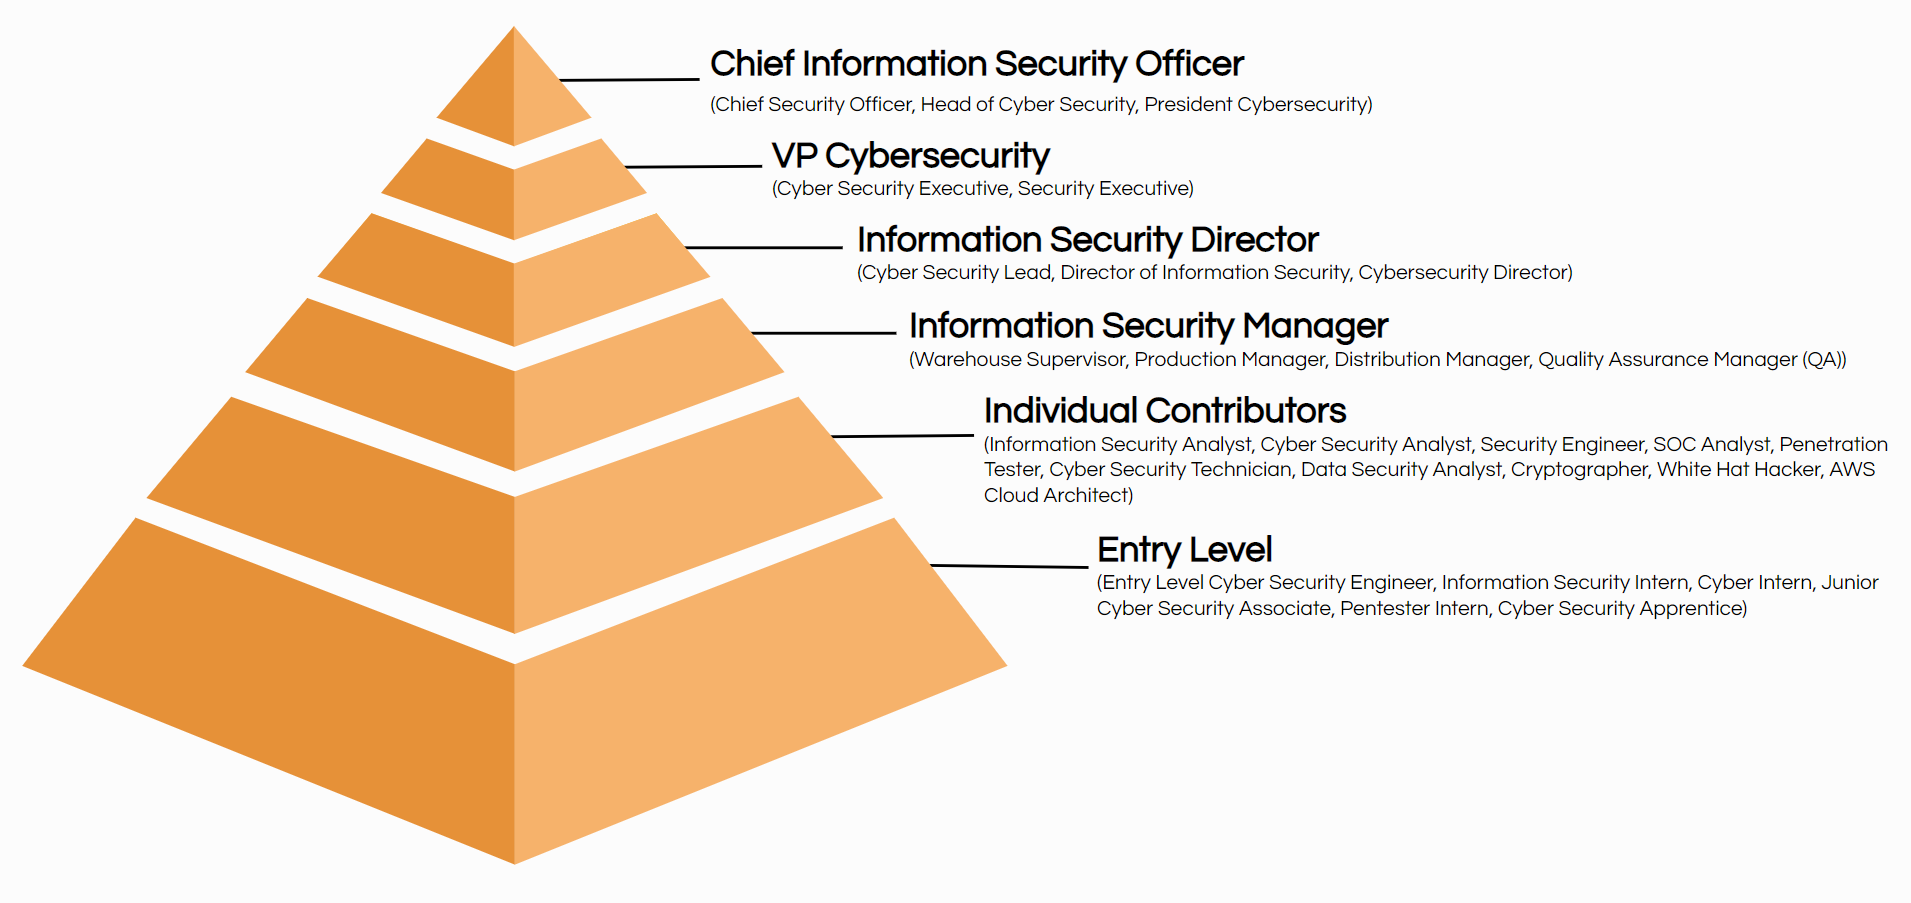 cybersecurity job titles hierarchy